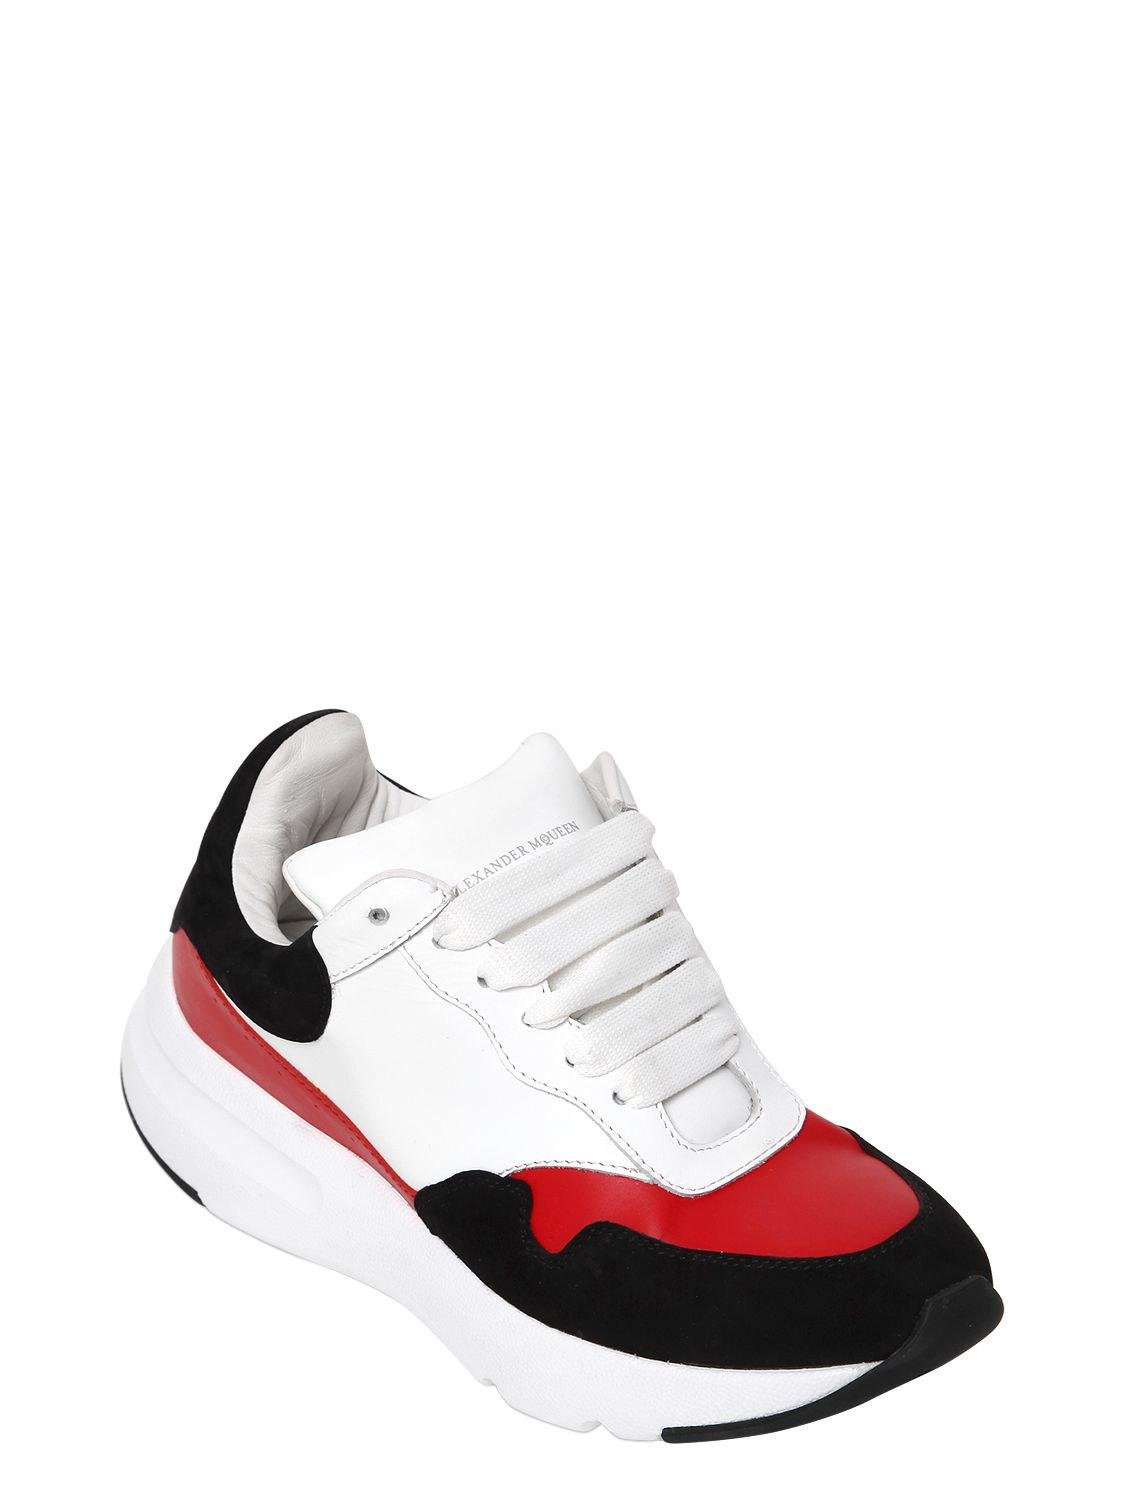 Alexander McQueen 50MM SUEDE & LEATHER SNEAKERS Visit New For Sale Perfect Sale Online Many Styles nwT42NS